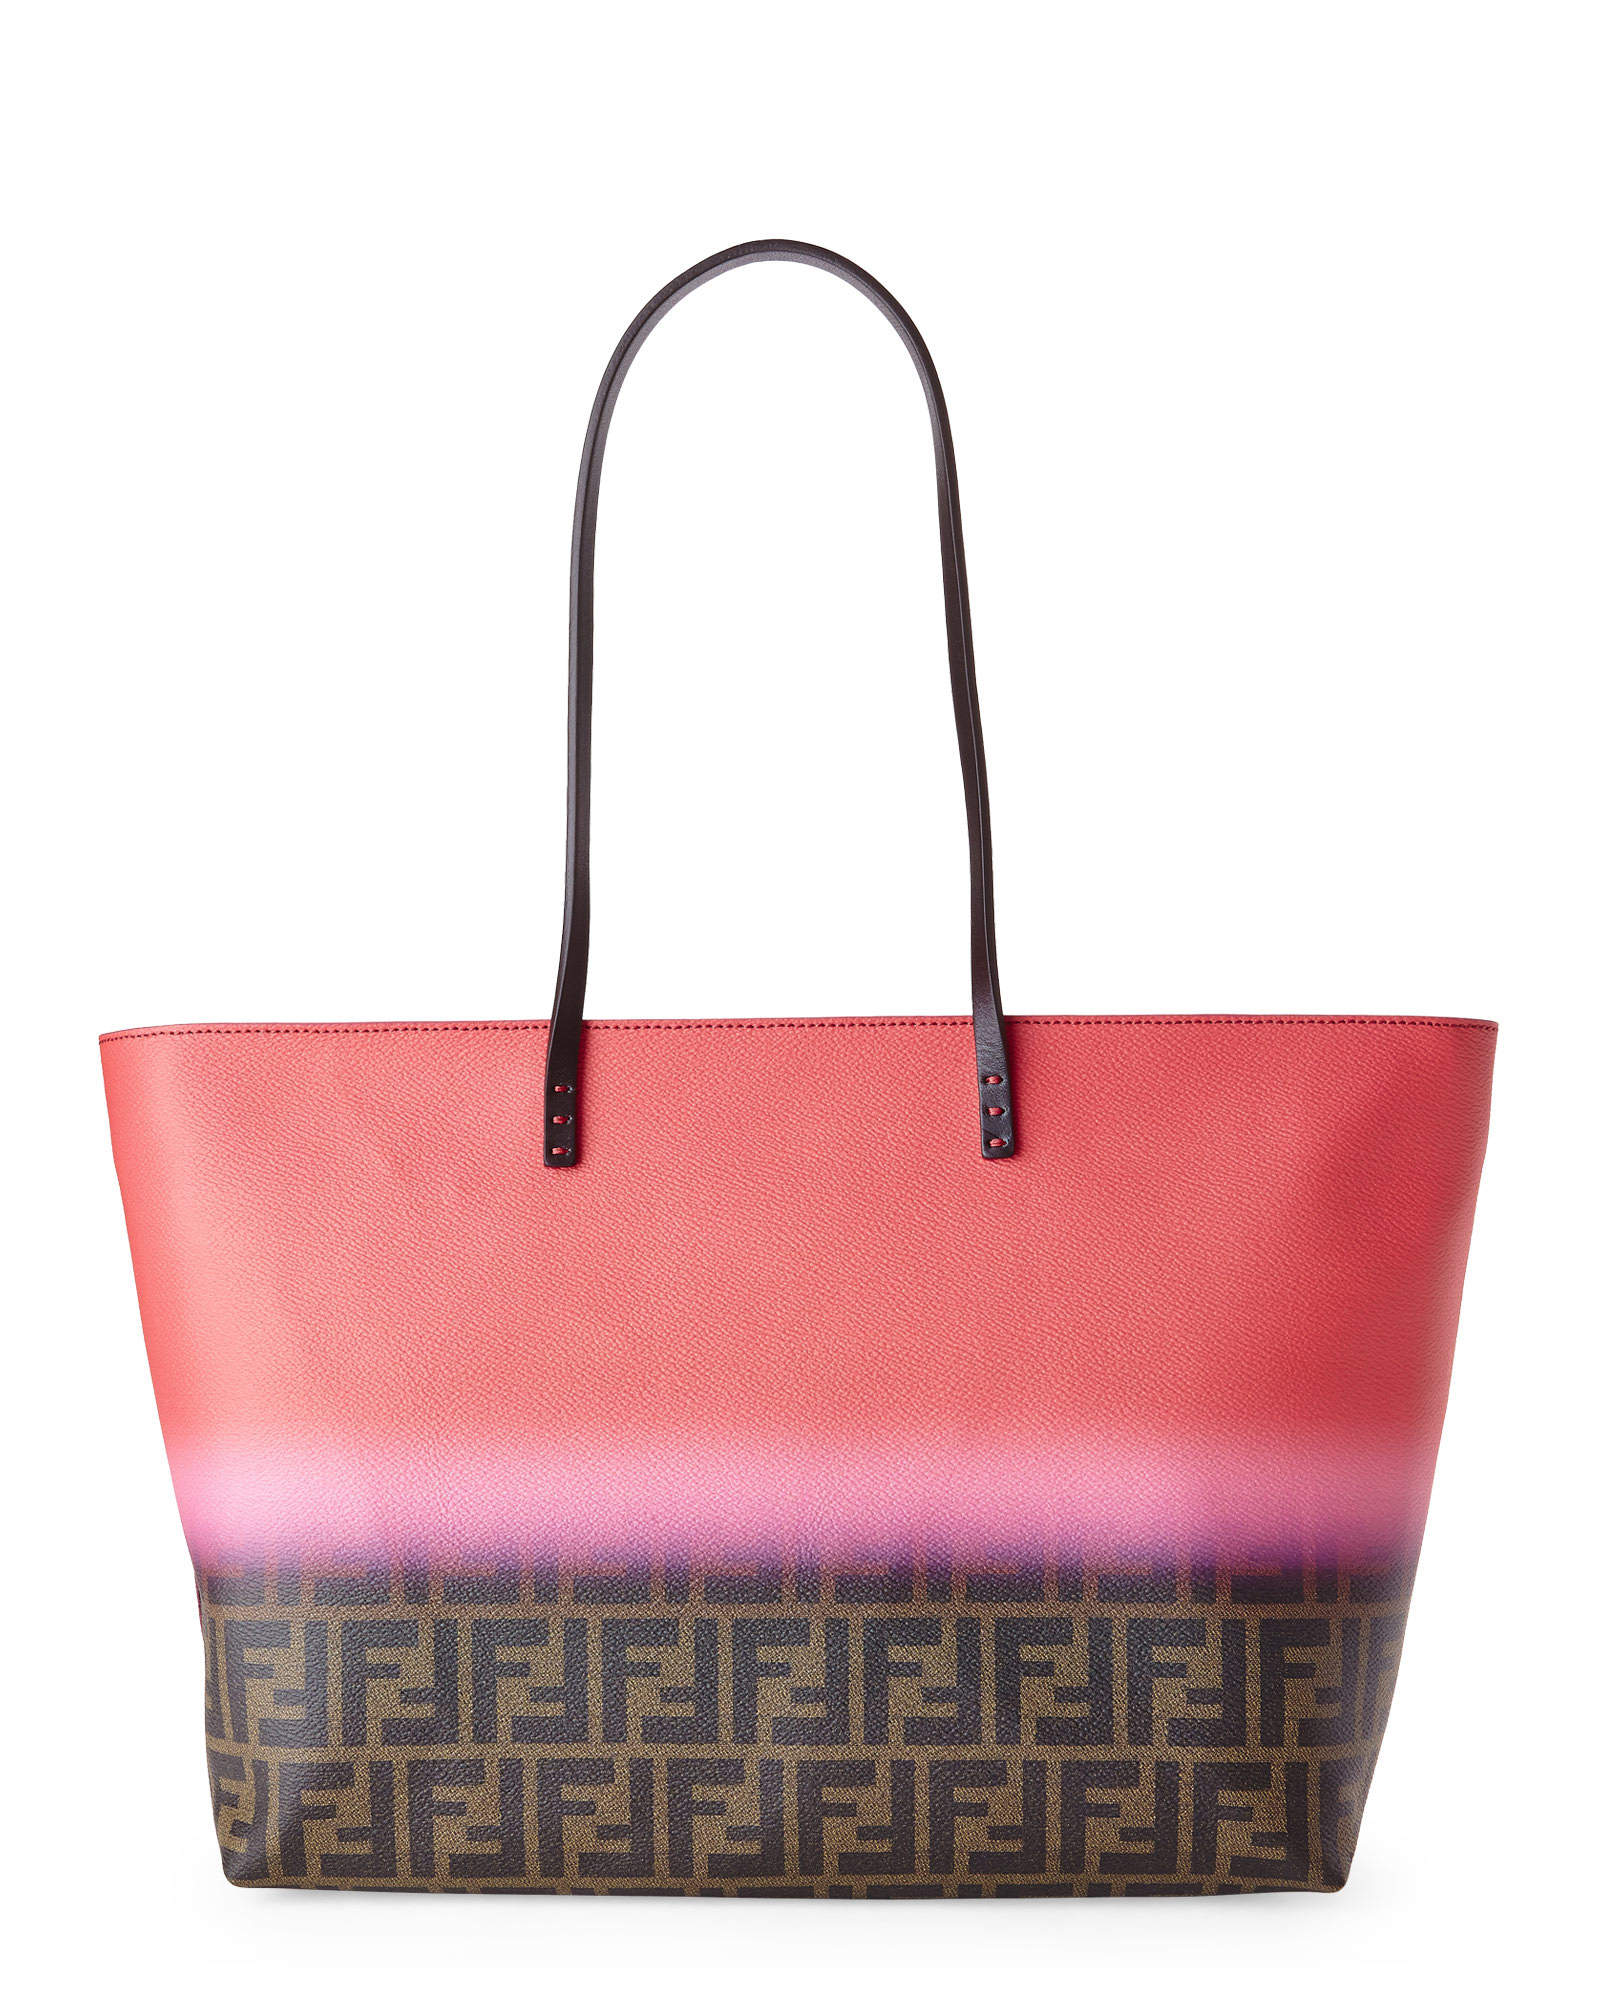 Lyst - Fendi Zucca Ombrã© Large Roll Tote in Red 44dca90b479f3